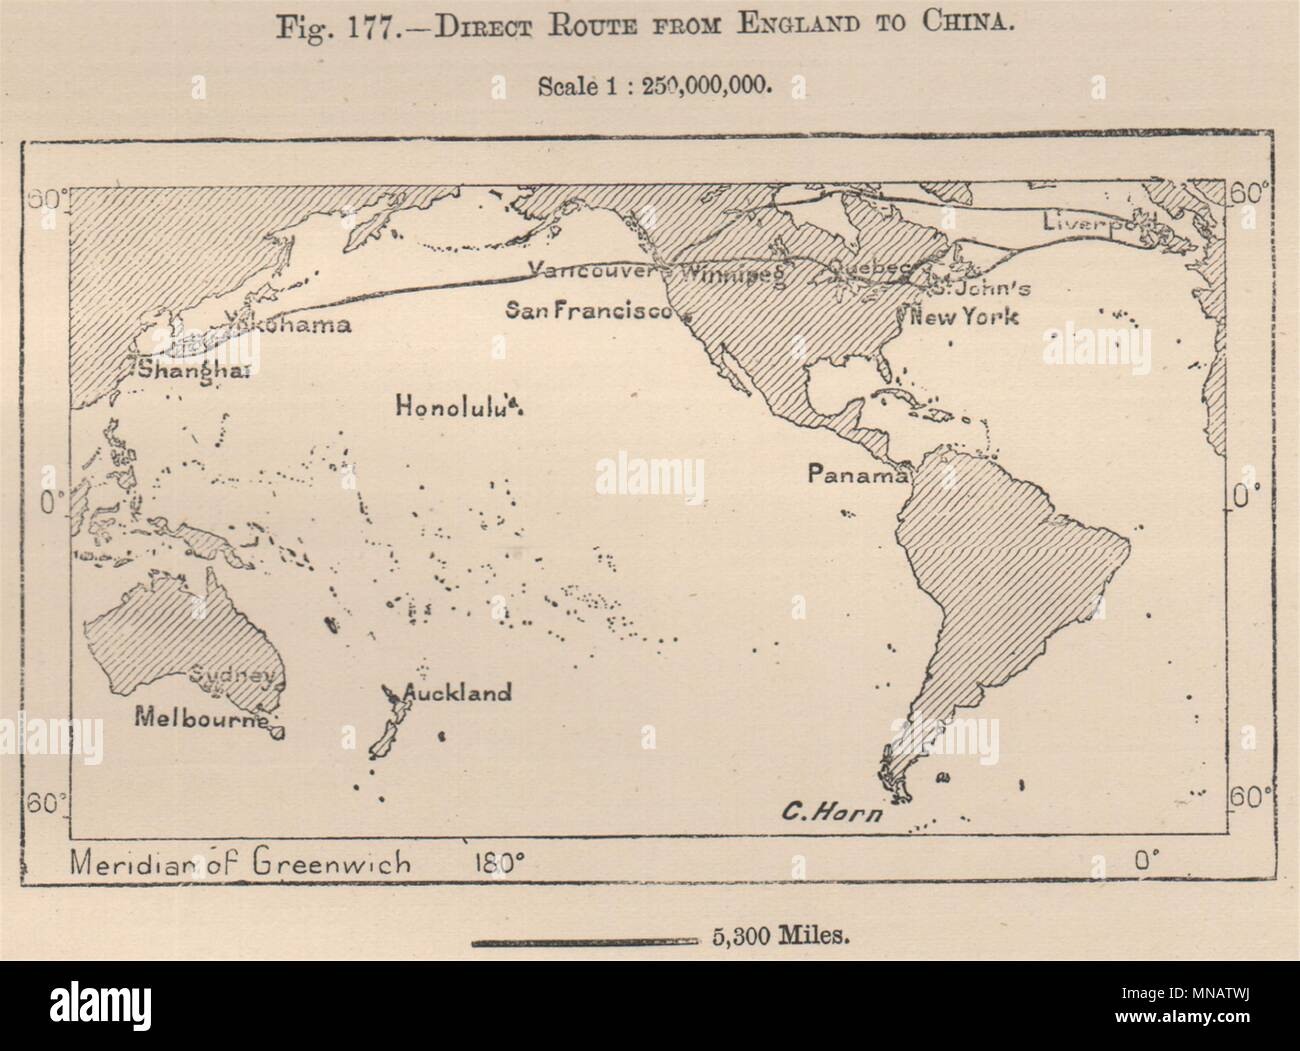 Direct route from england to china world canada 1885 old antique direct route from england to china world canada 1885 old antique map chart gumiabroncs Choice Image